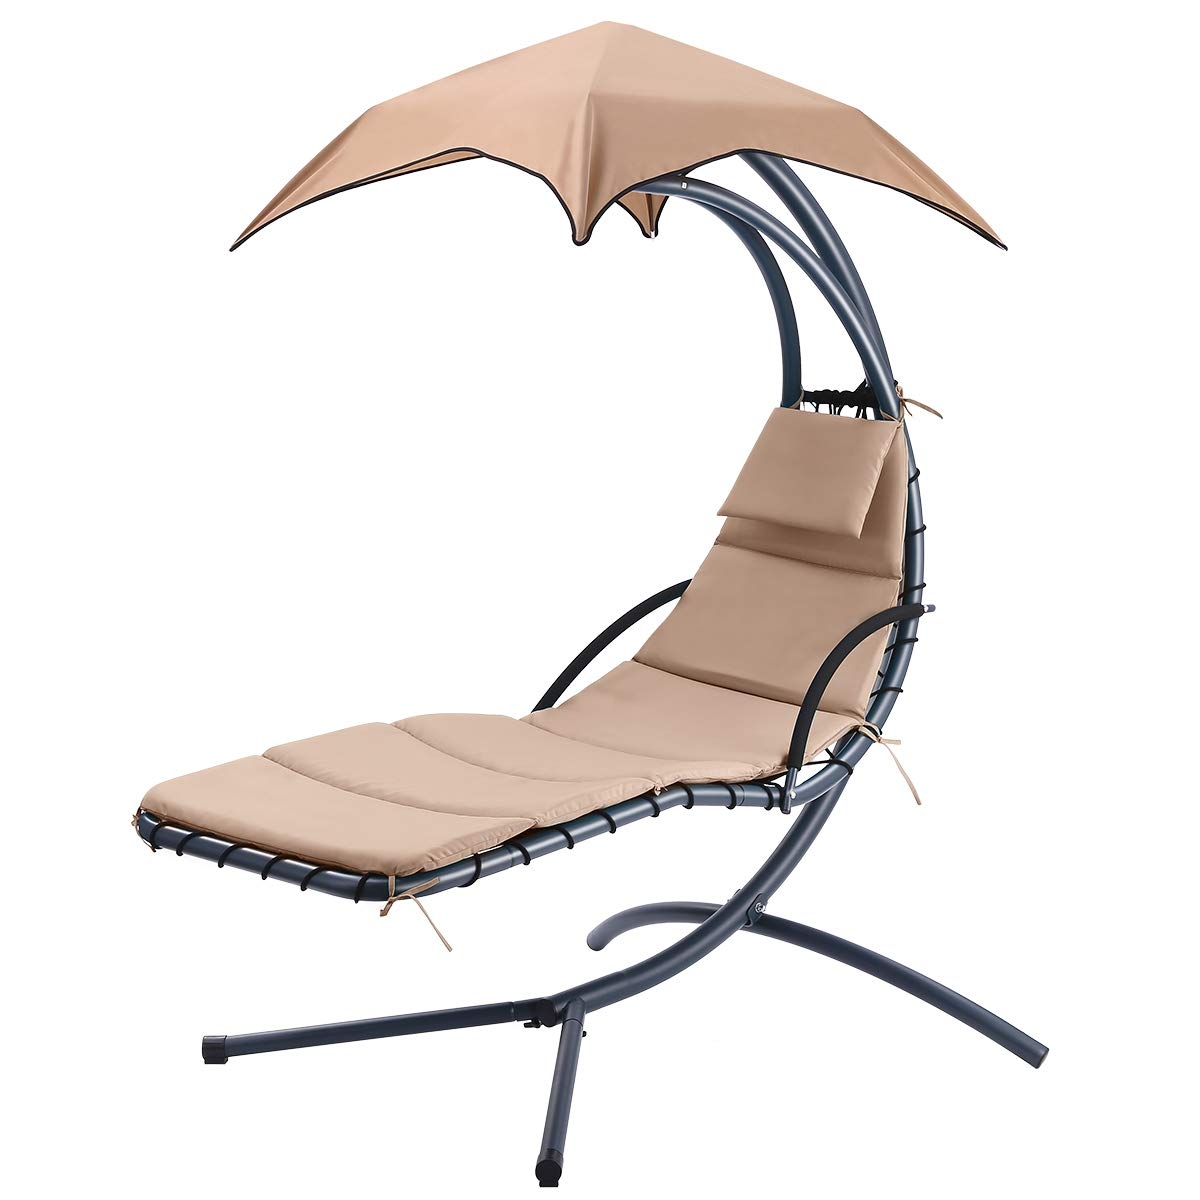 Hammock Chair Patio Swing Lawn Chair With Canopy Arc Stand